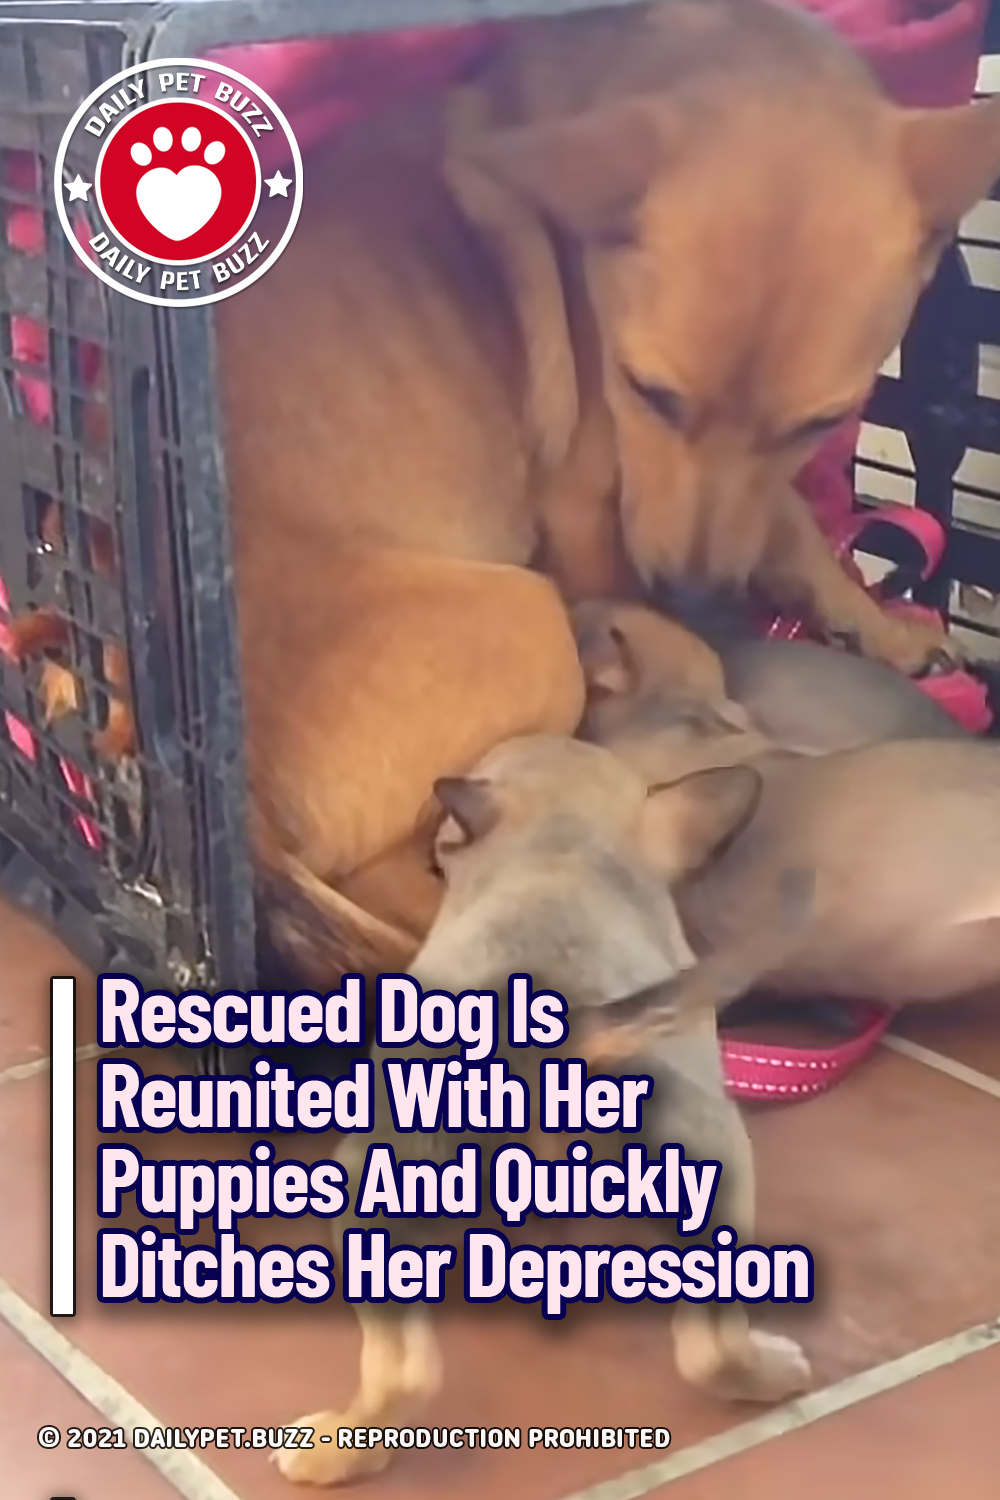 Rescued Dog Is Reunited With Her Puppies And Quickly Ditches Her Depression